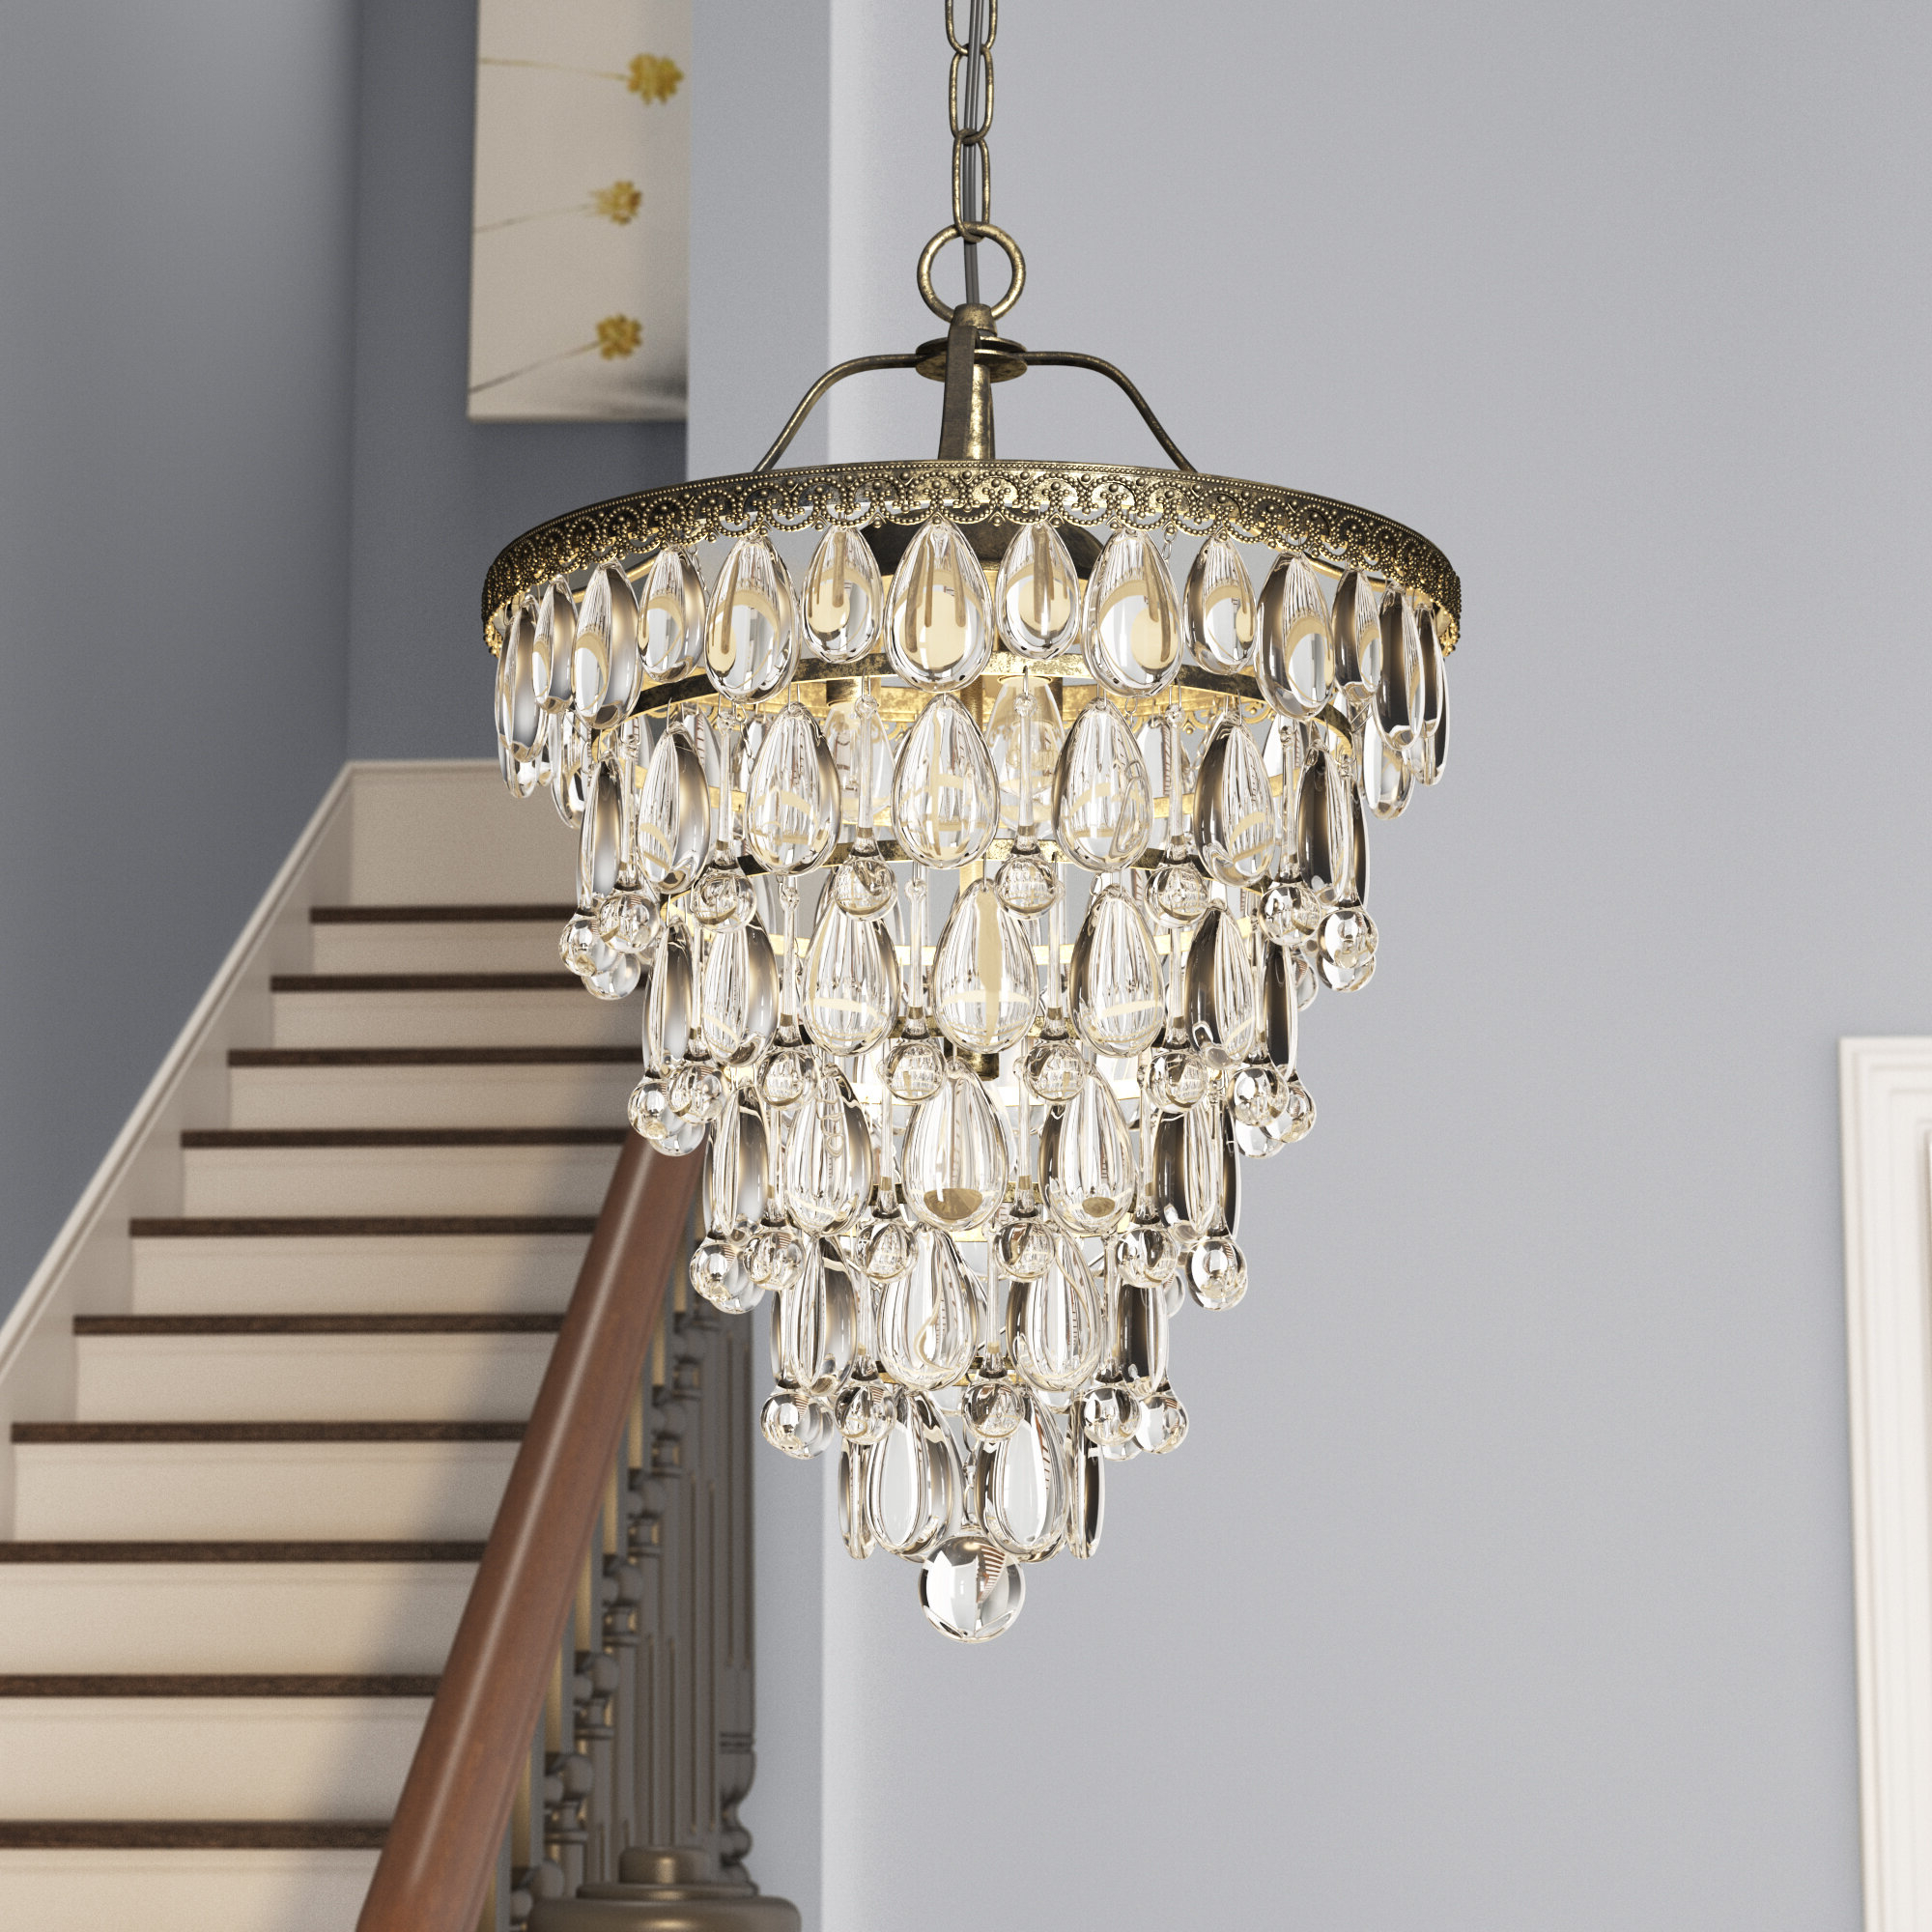 Wayfair Within Aurore 4 Light Crystal Chandeliers (View 18 of 25)